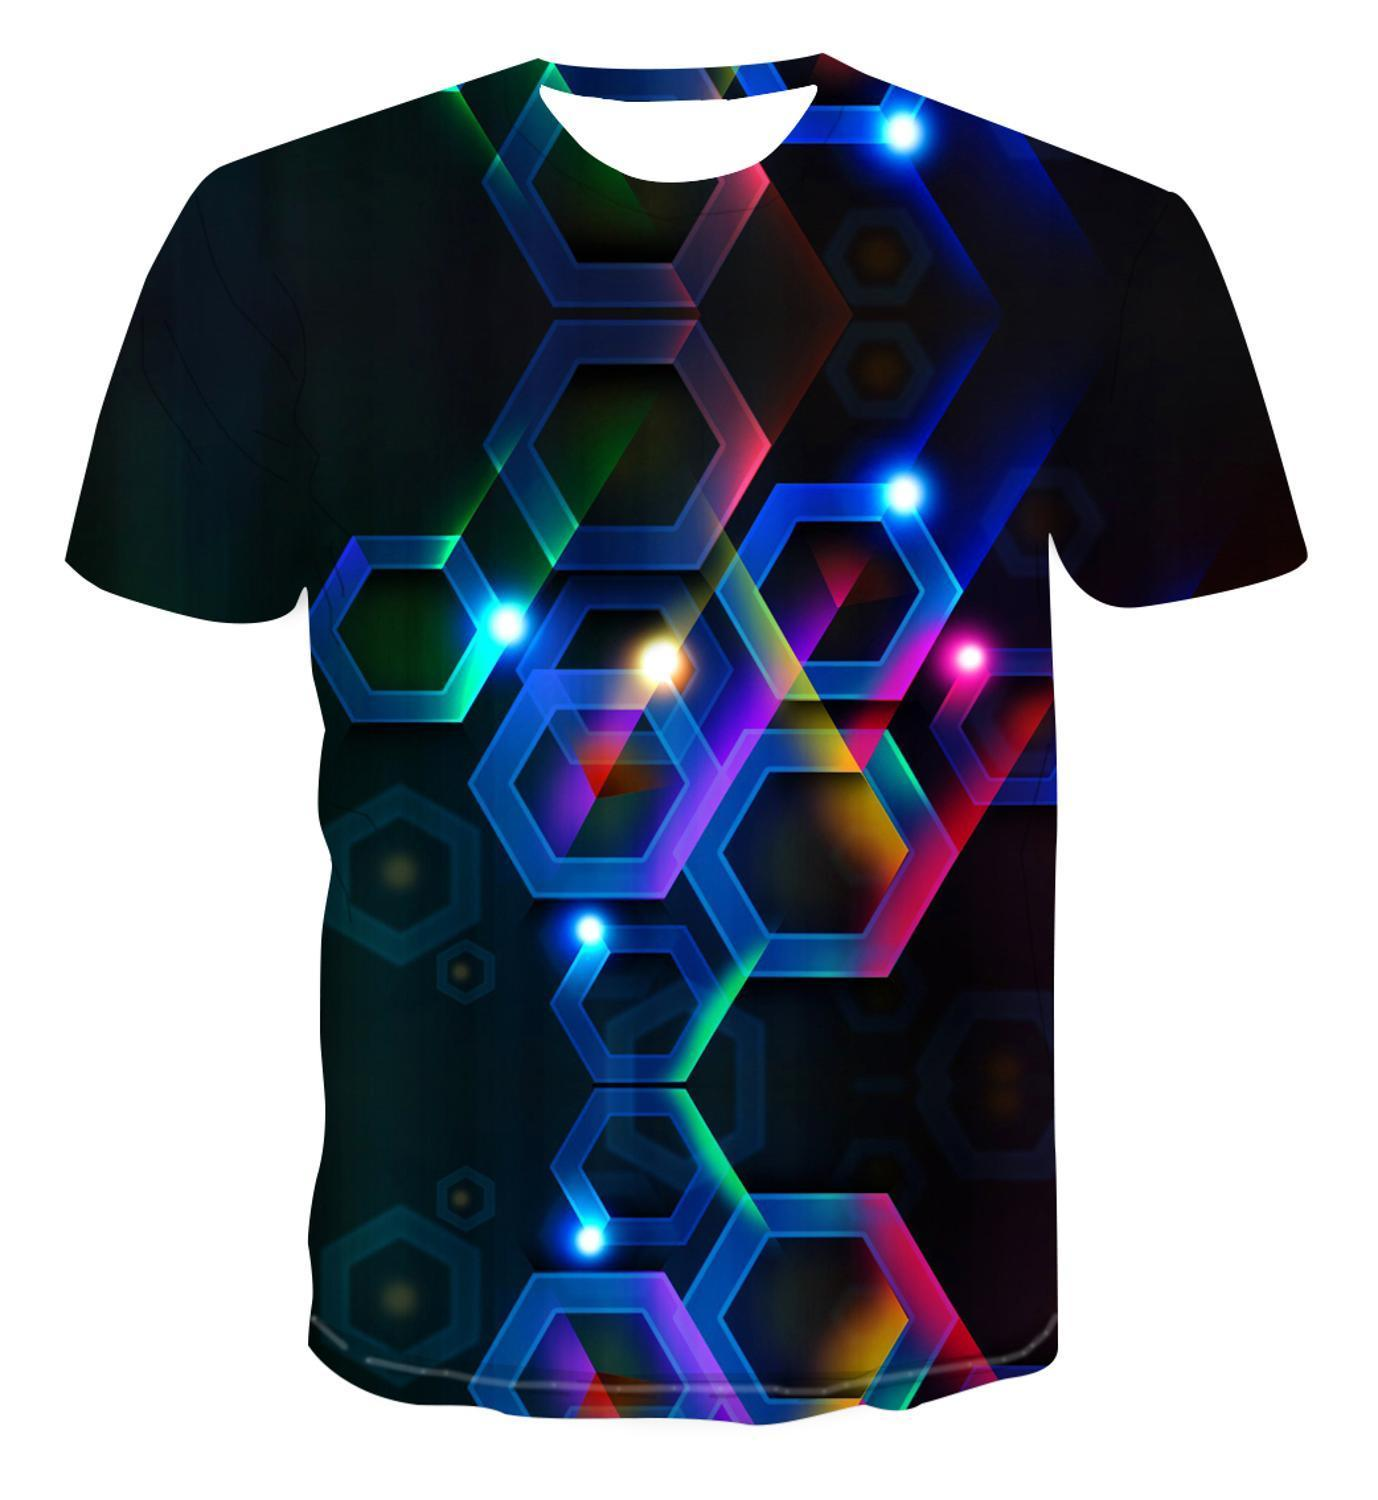 3d New Simple Fashion Color Geometry Stack Psychedelic Creative Design T -Shirt For Men 'S Versatile